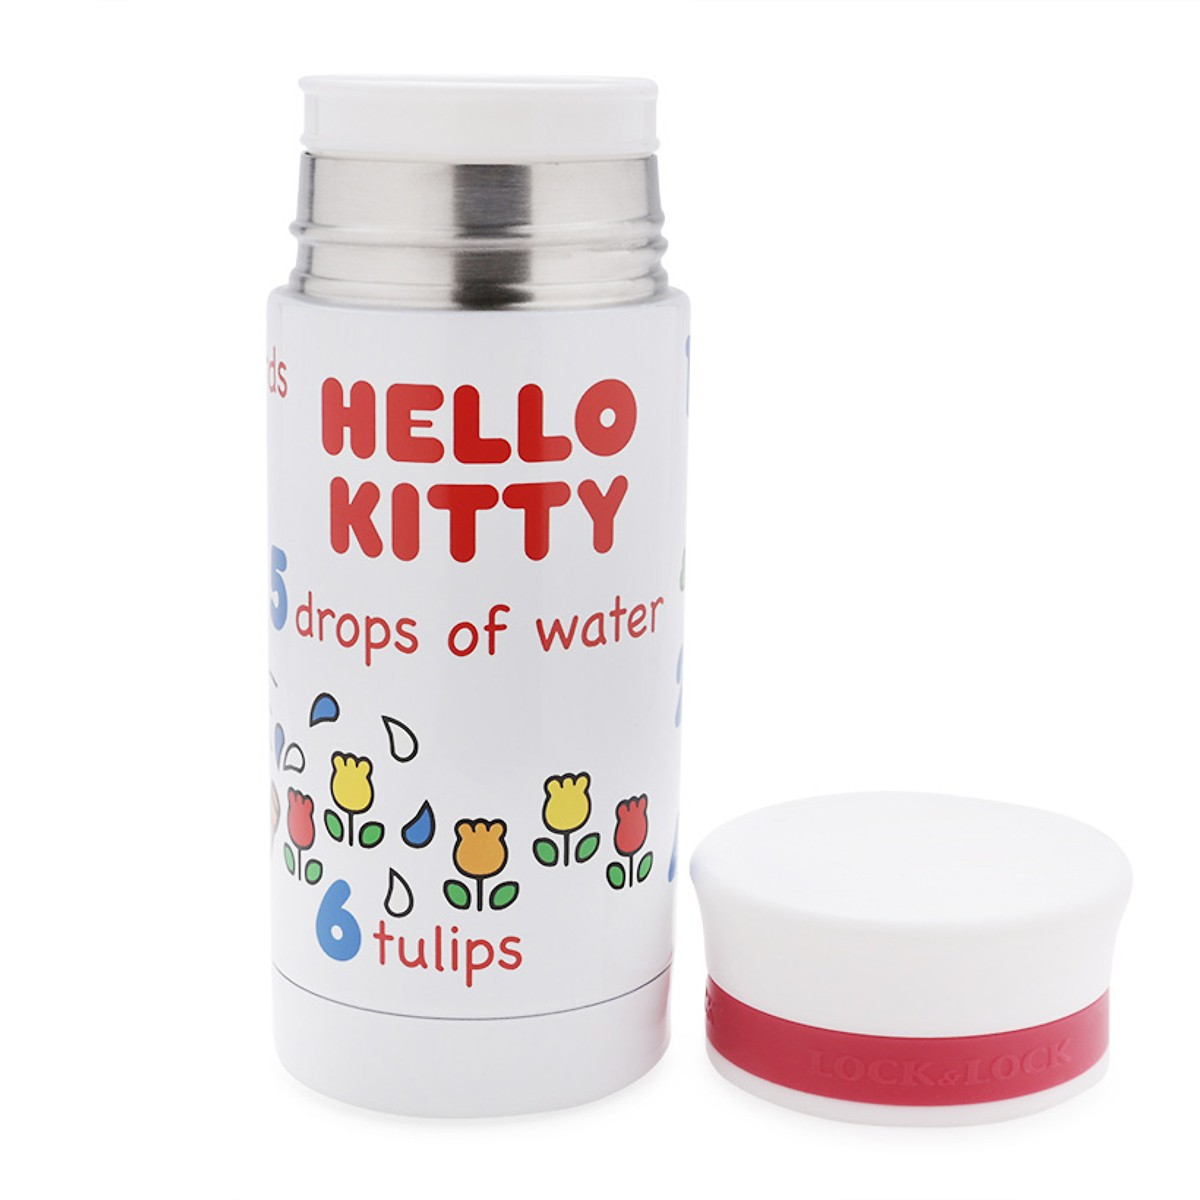 Bình Giữ Nhiệt Hello Kitty Clever Number HKT350W 200ml